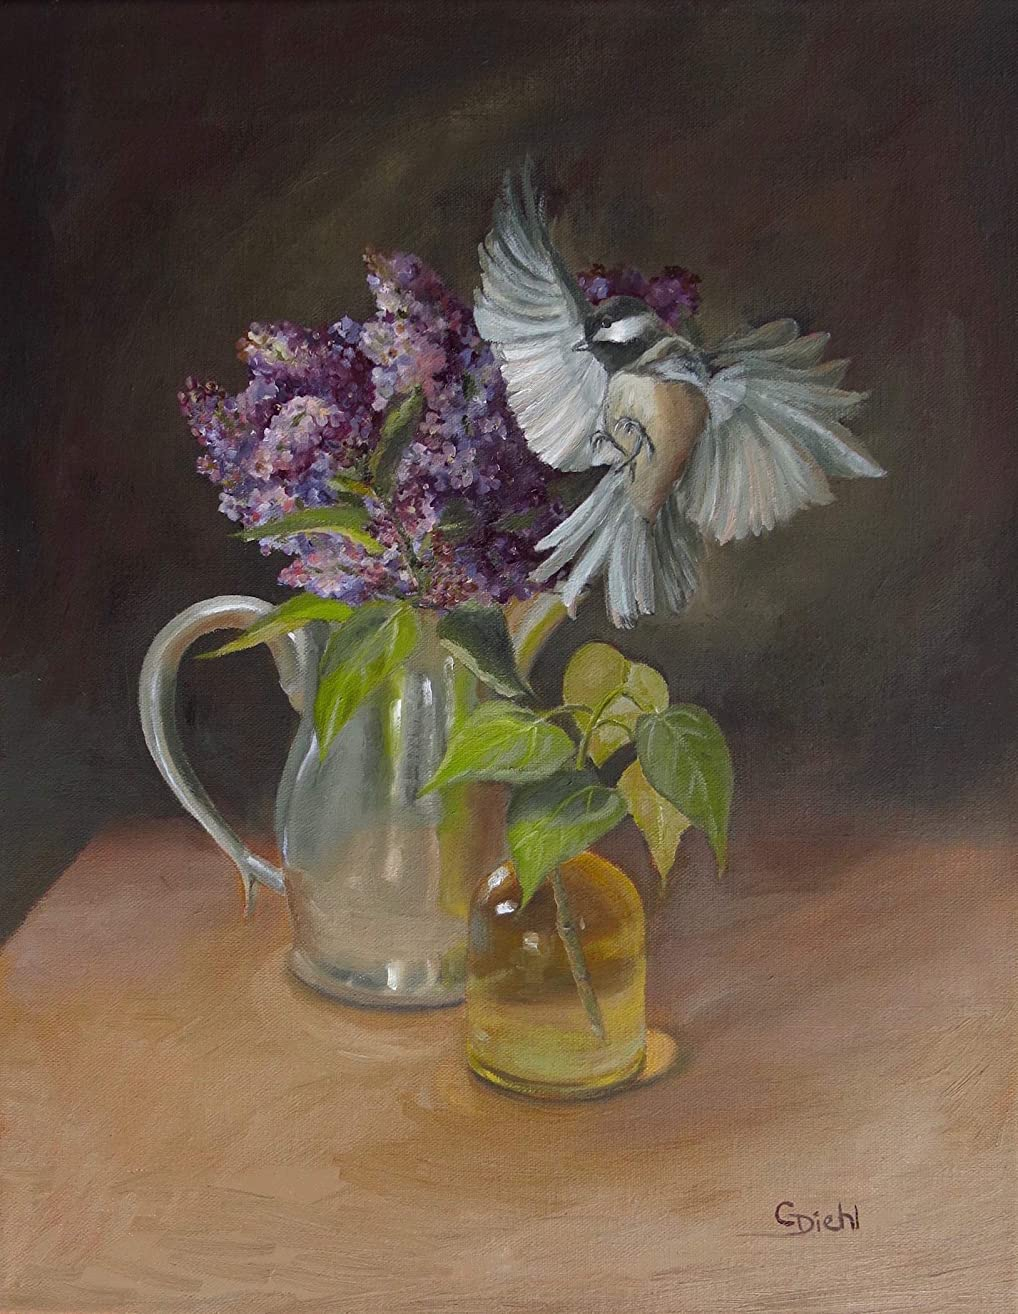 Bird with Garden Floral and Pewter Still Life Wall Decor Fine Art Original (NOT a print) 11